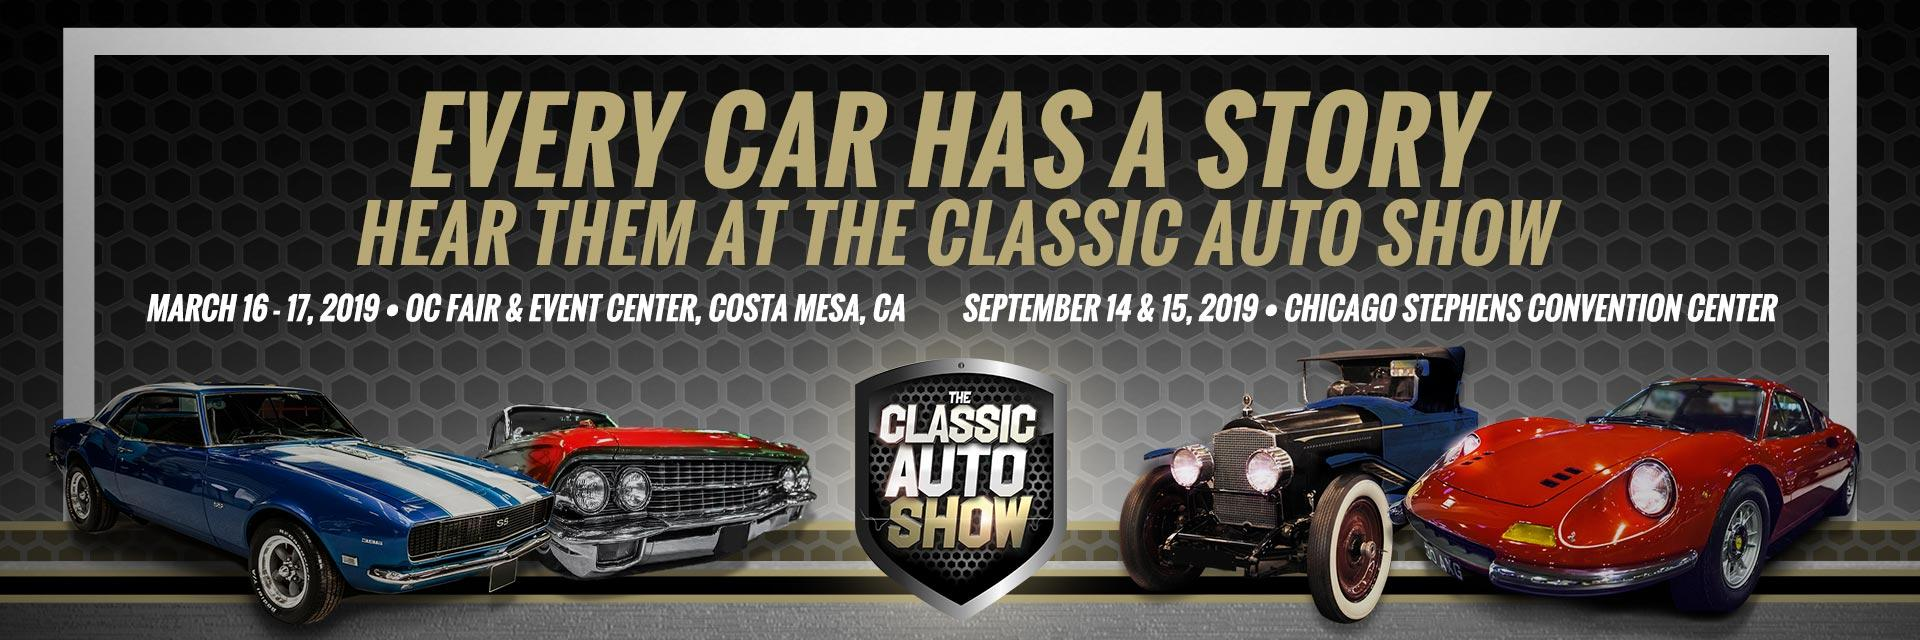 The Classic Auto Show - Car show tickets 2018